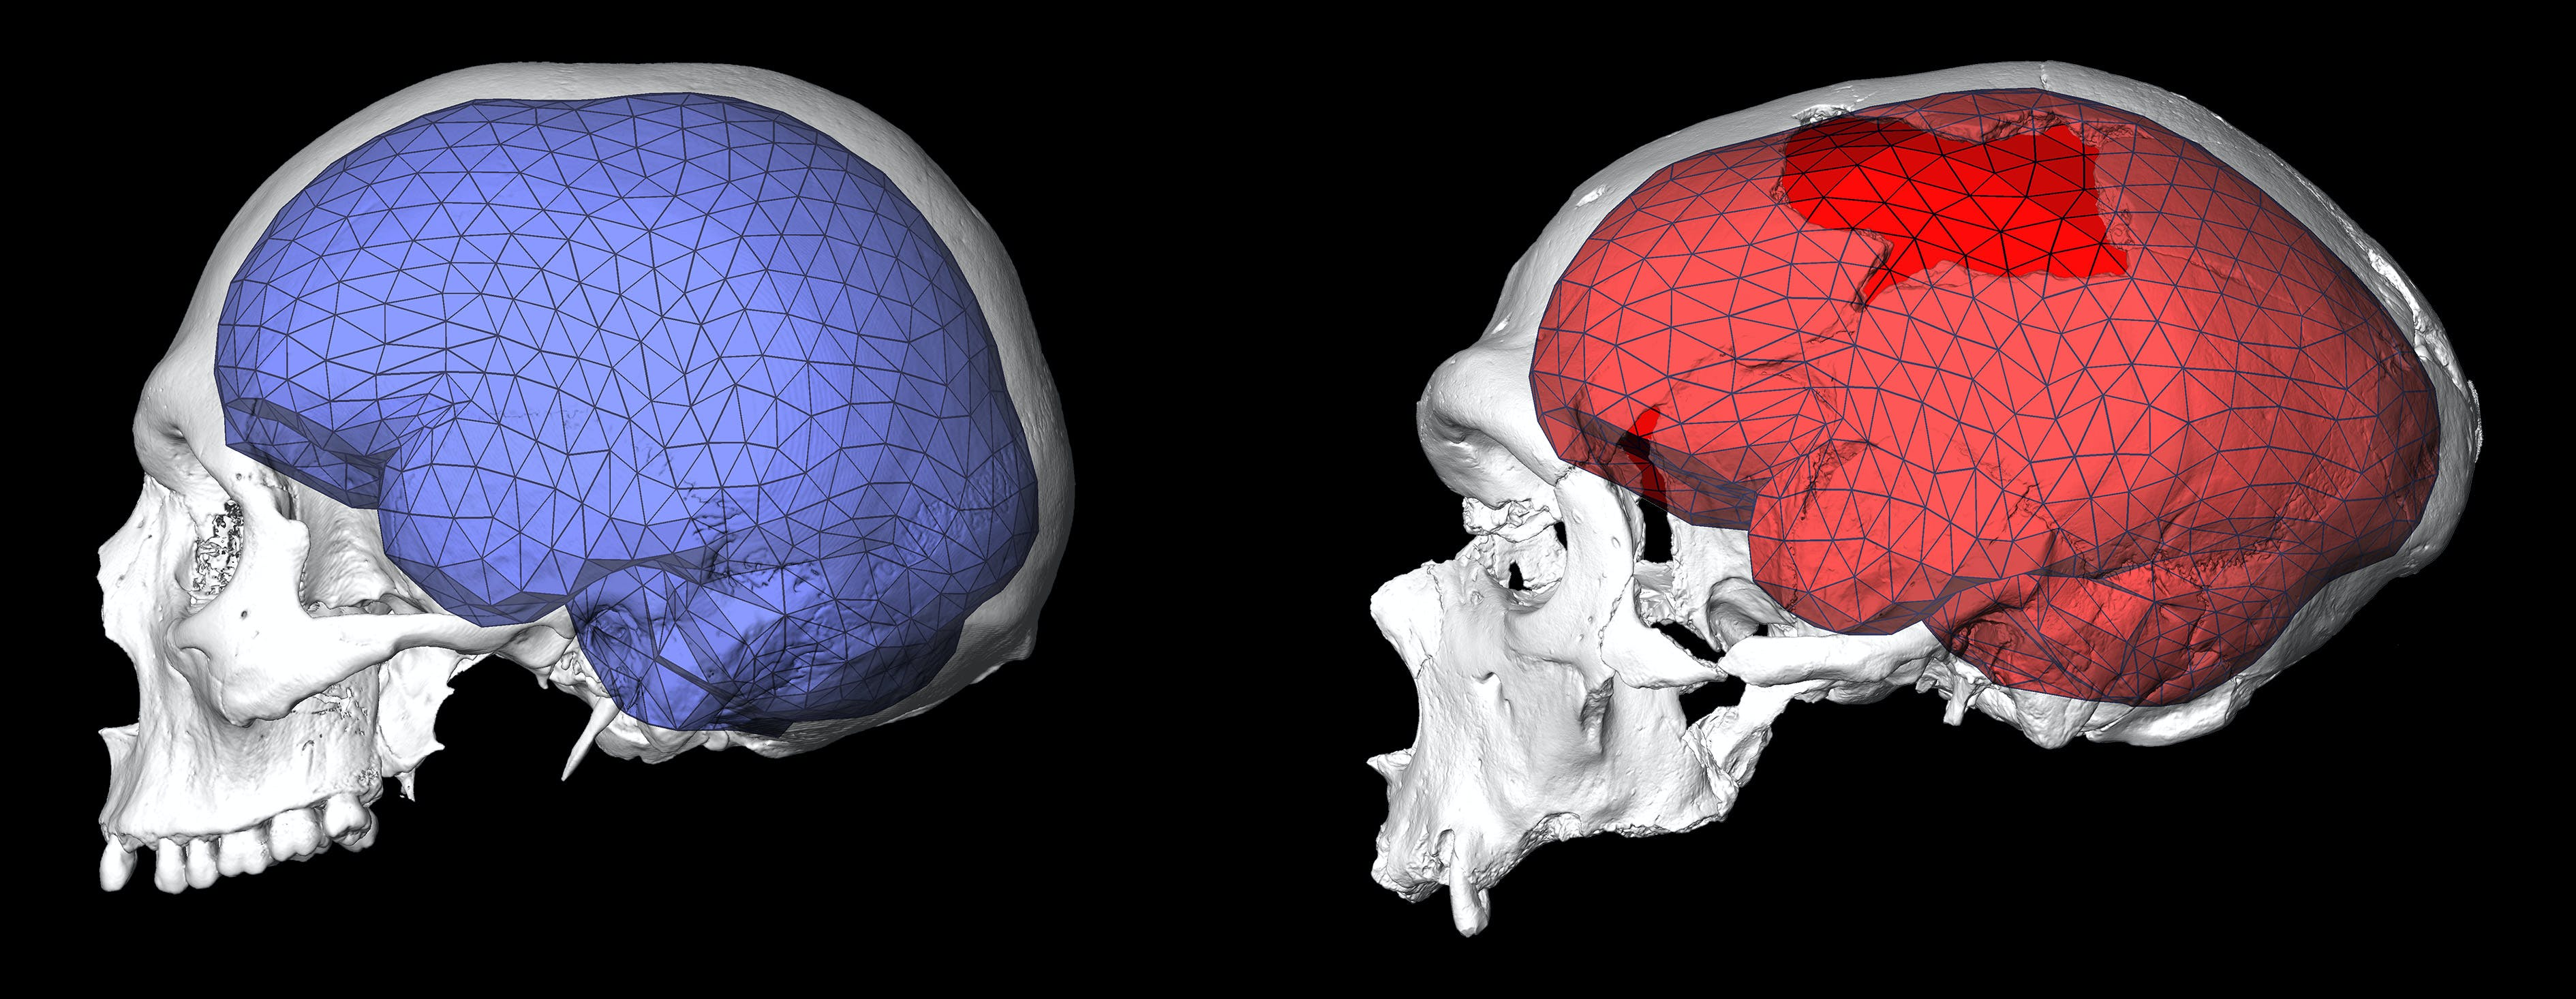 brain shape evolution coincided with the birth of modern